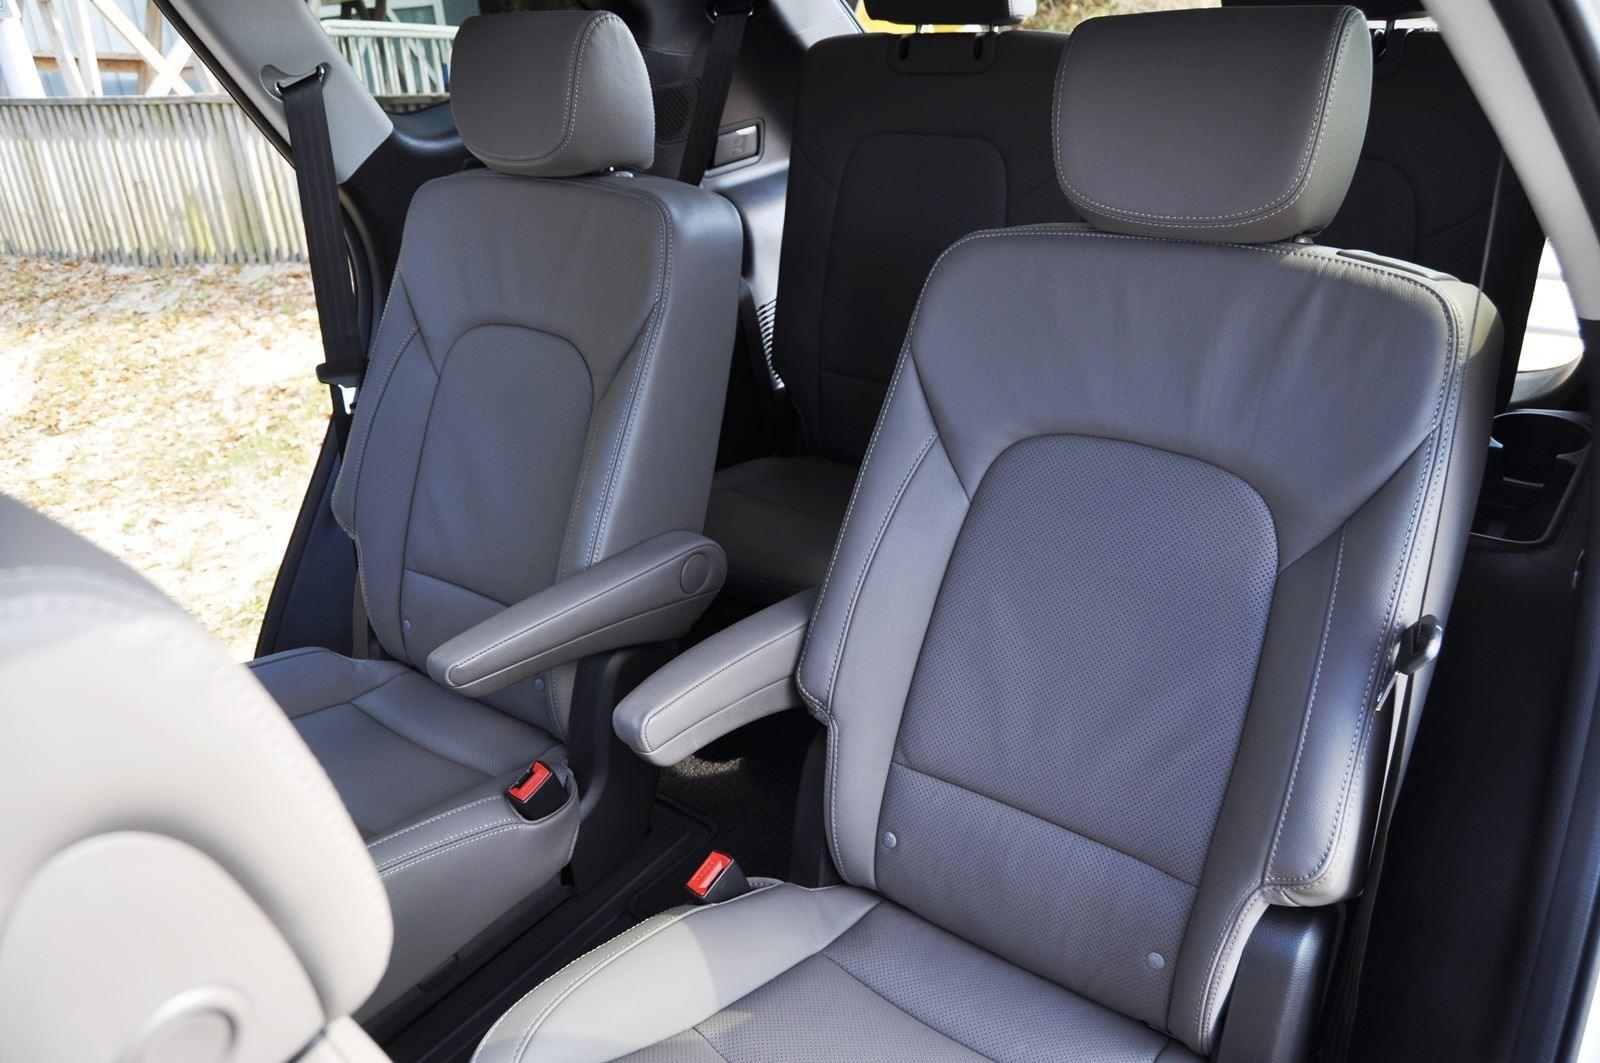 2015 Hyundai Santa Fe LWB Ultimate - Interior Photos 3